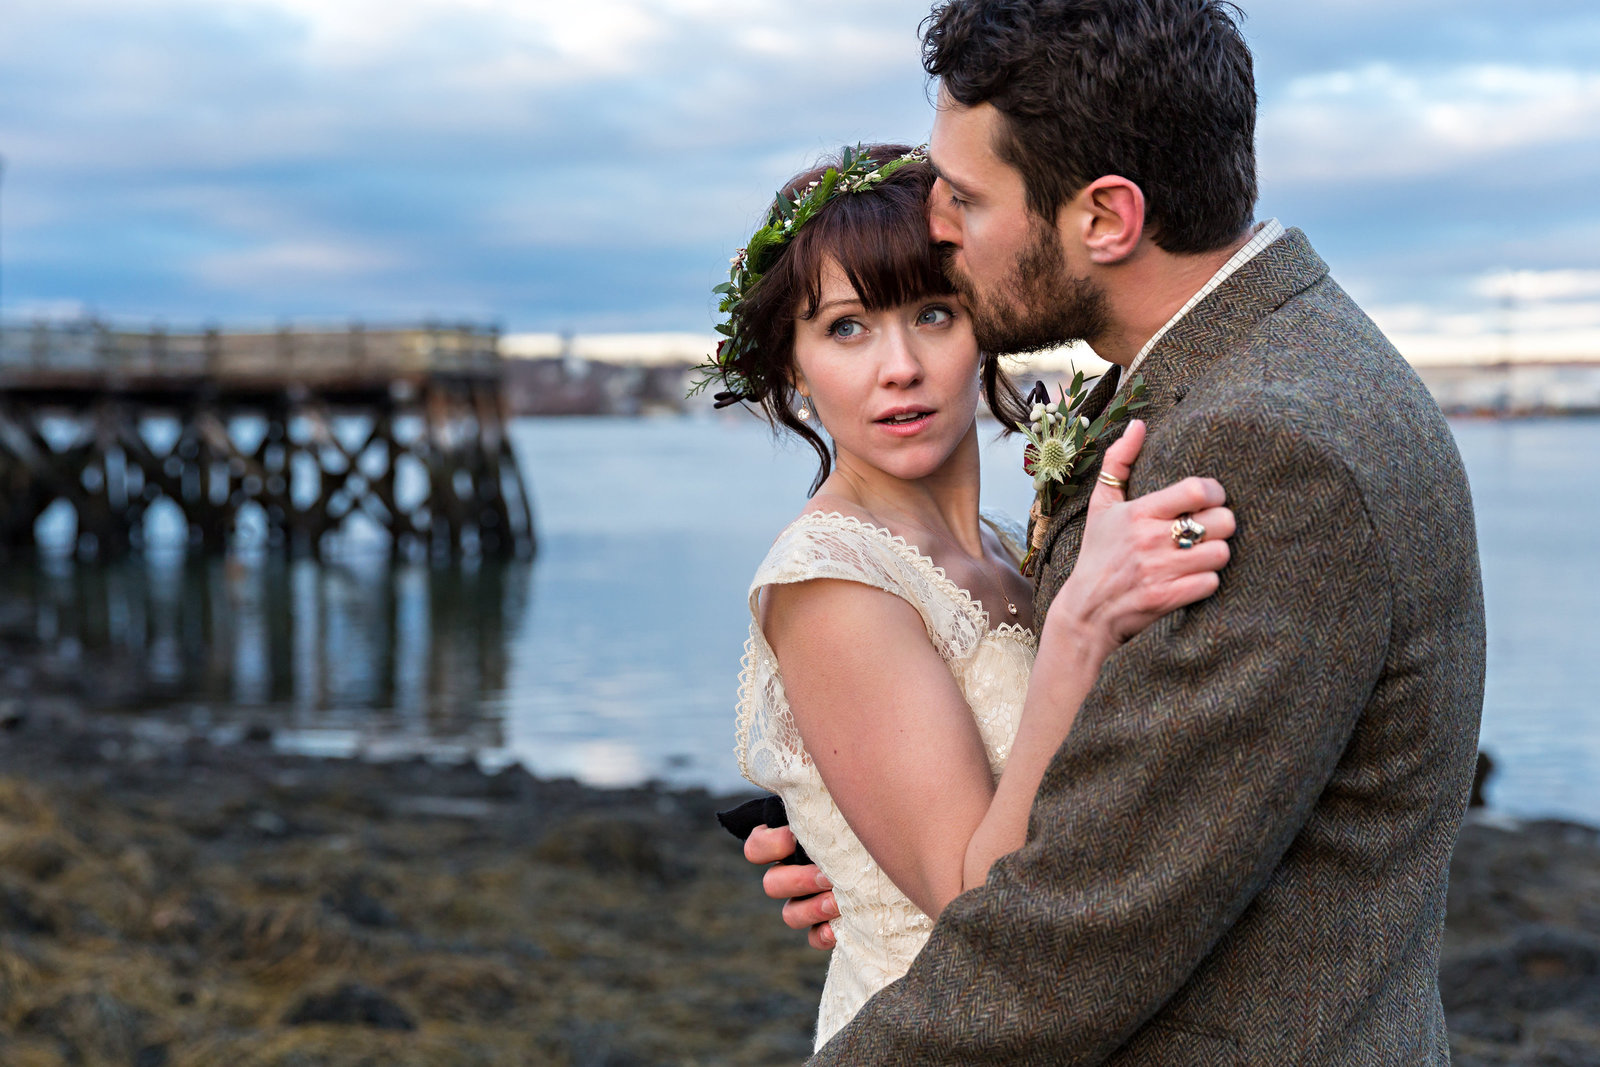 Portsmouth New Hampshire Elopement Photographers Elope NH Wedding Couple Flower Crown Ocean Dock Seaweed Photo